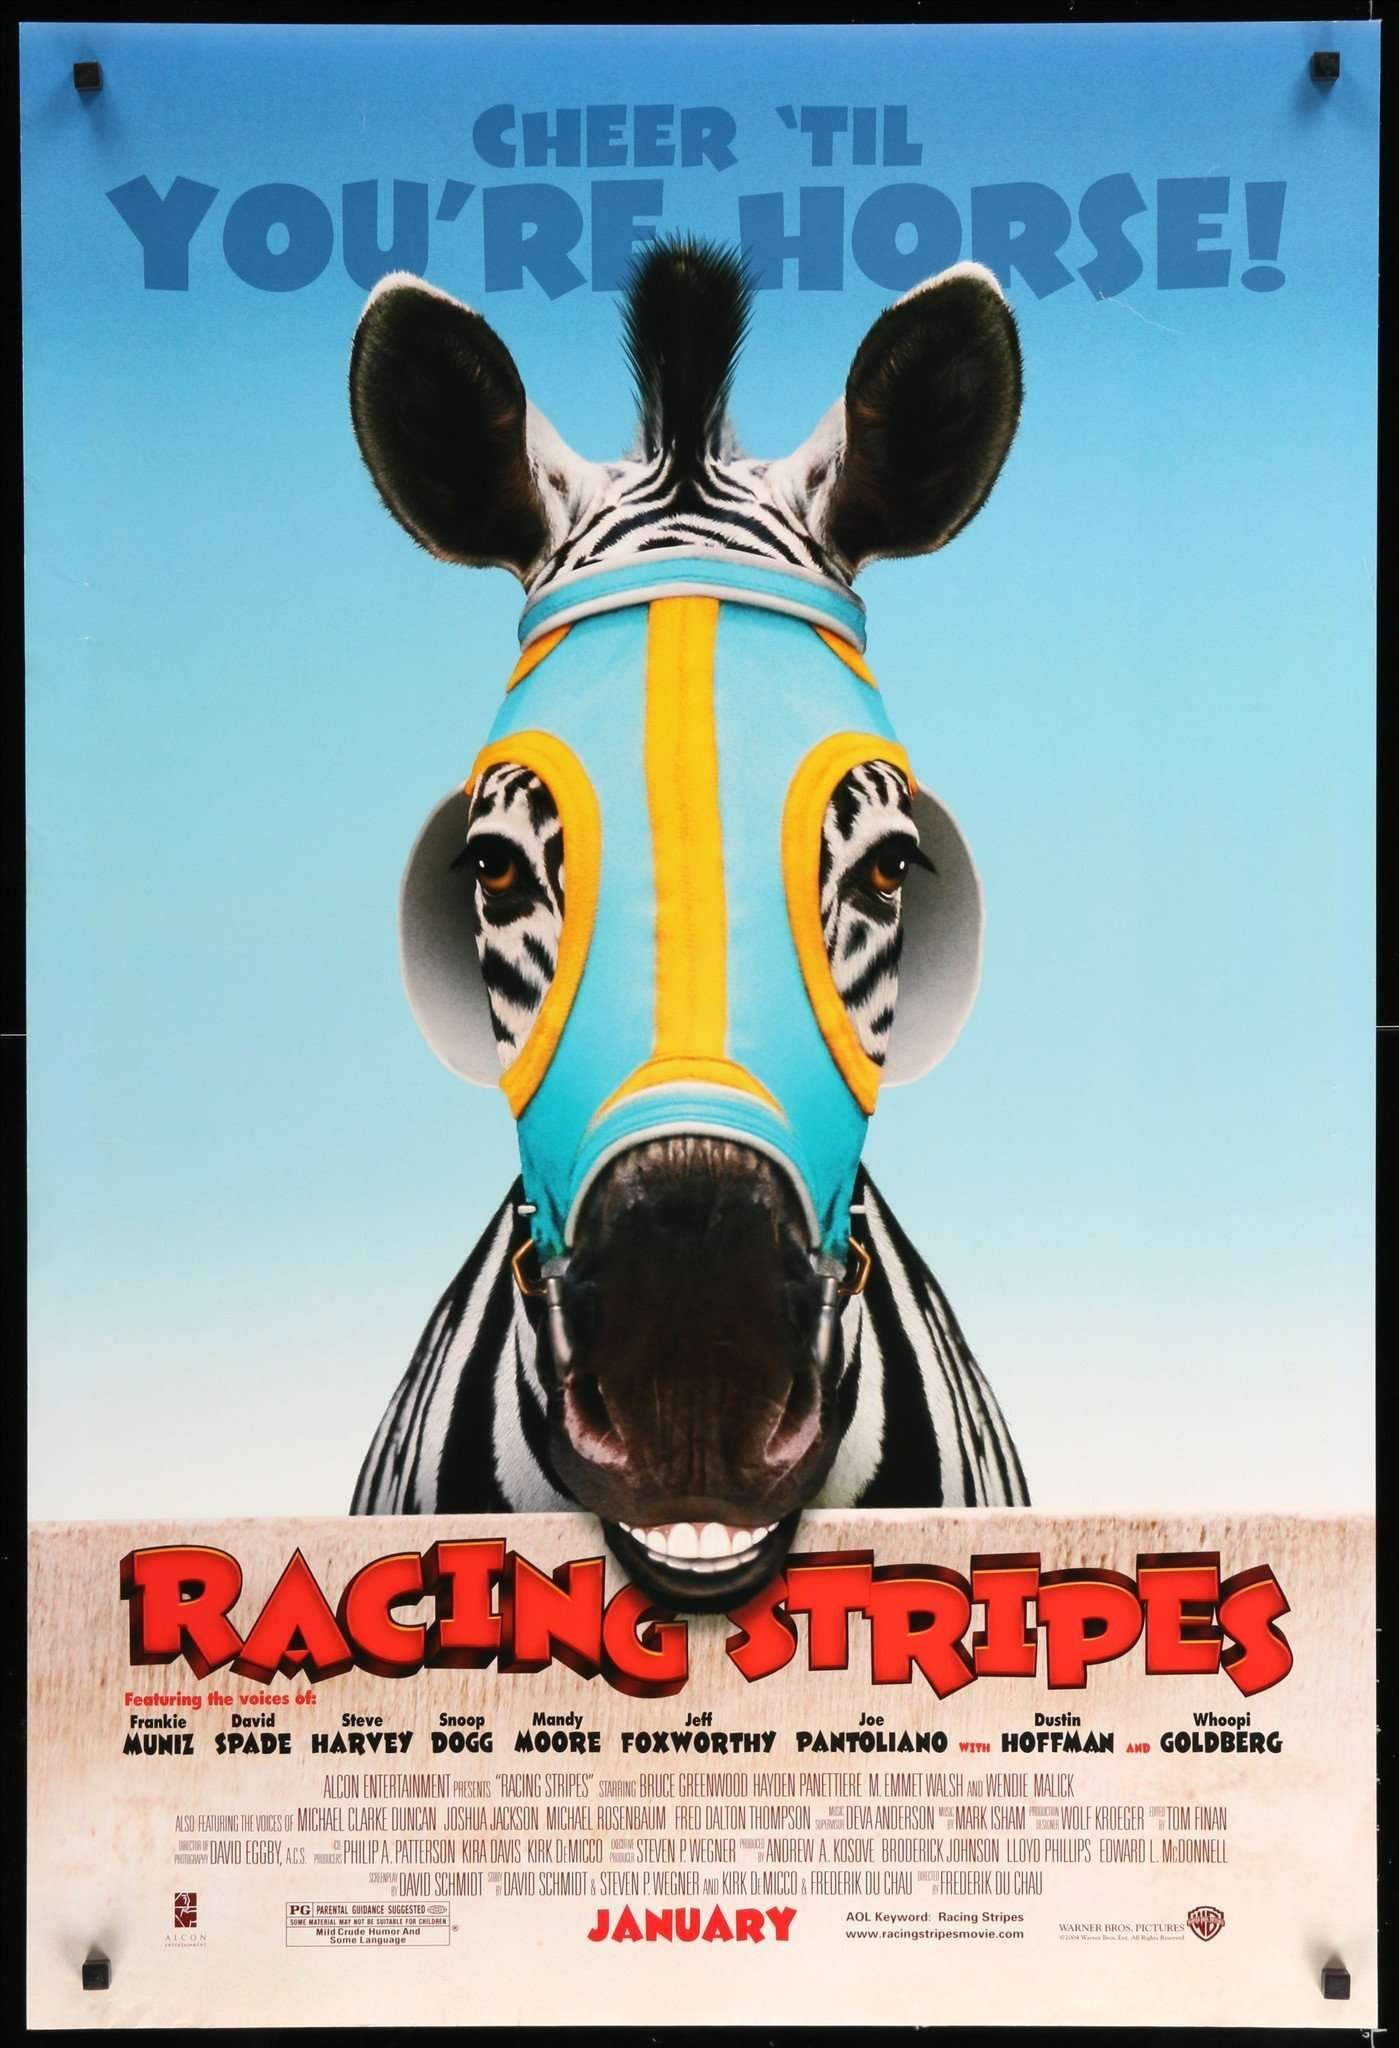 Racing Stripes 2005 Horse Movies Racing Stripes Movie Posters